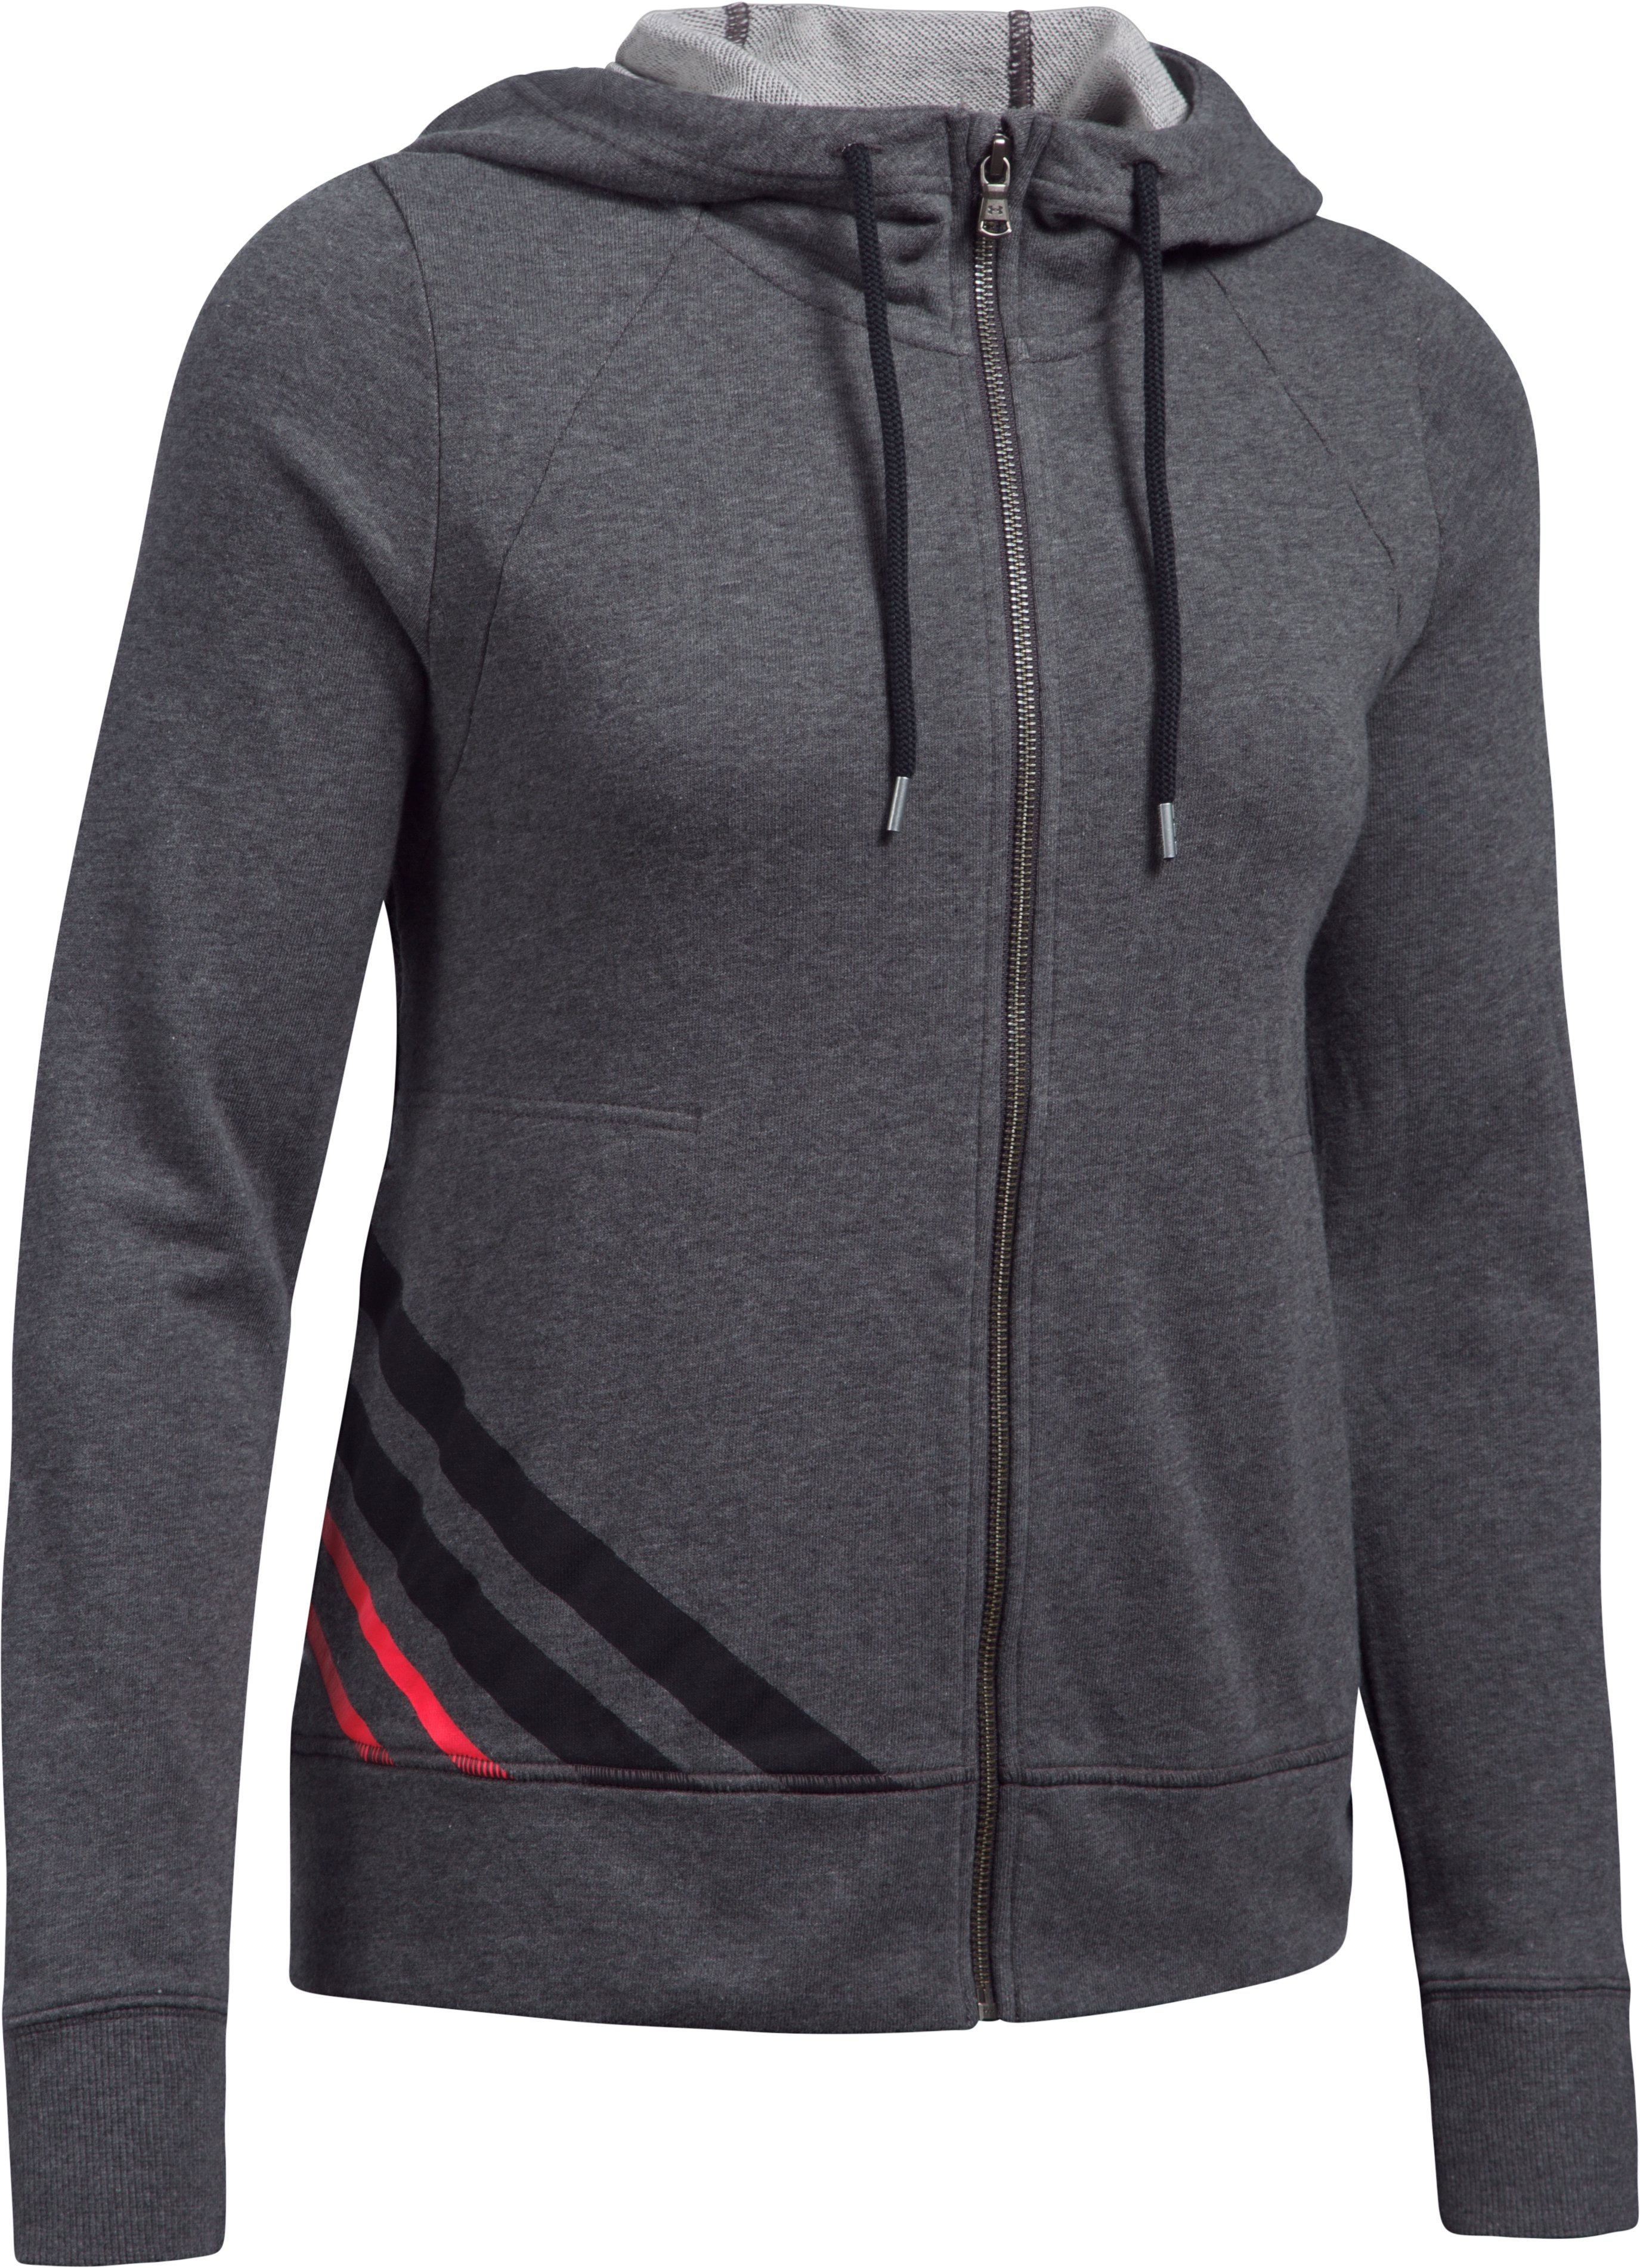 Women's UA French Terry Full Zip Hoodie, Carbon Heather, undefined